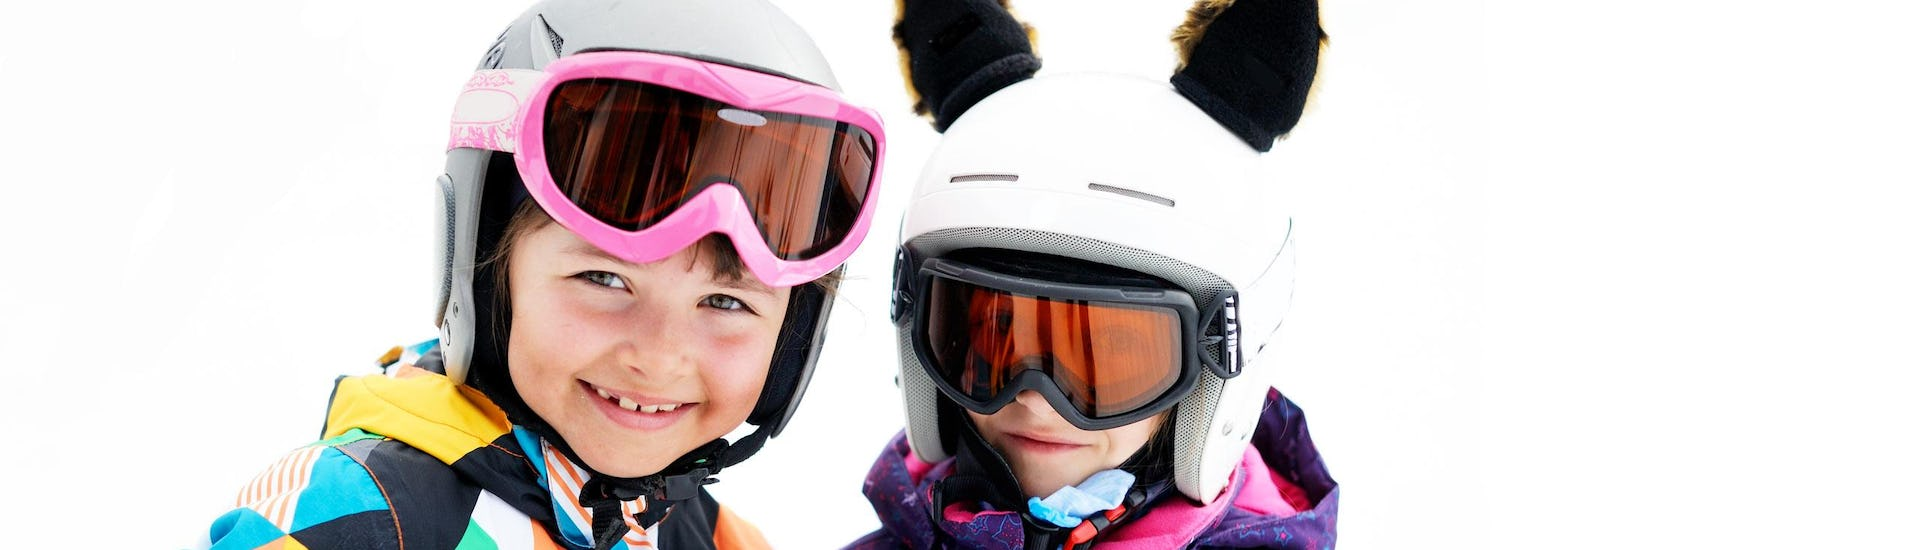 Two young children smiling at the camera during one of the Ski Lessons for Kids (4-12 y. ) - Holidays - First Timer organised by Scuola di Sci e Snowboard Dolomites La Villa.